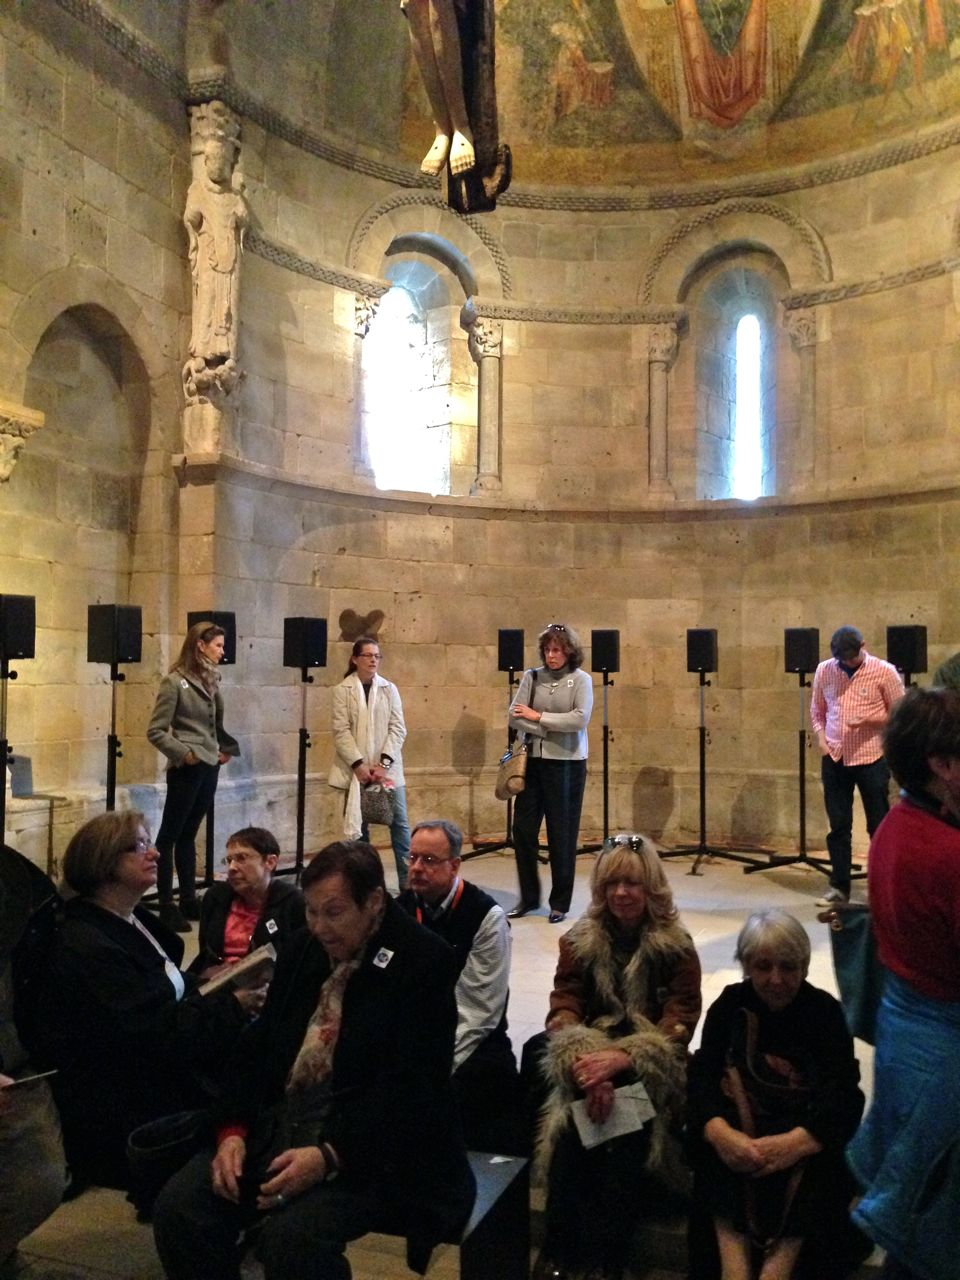 Janet-Cardiff-at-the-Cloisters-Photo-by-Michelle-Aldredge-18